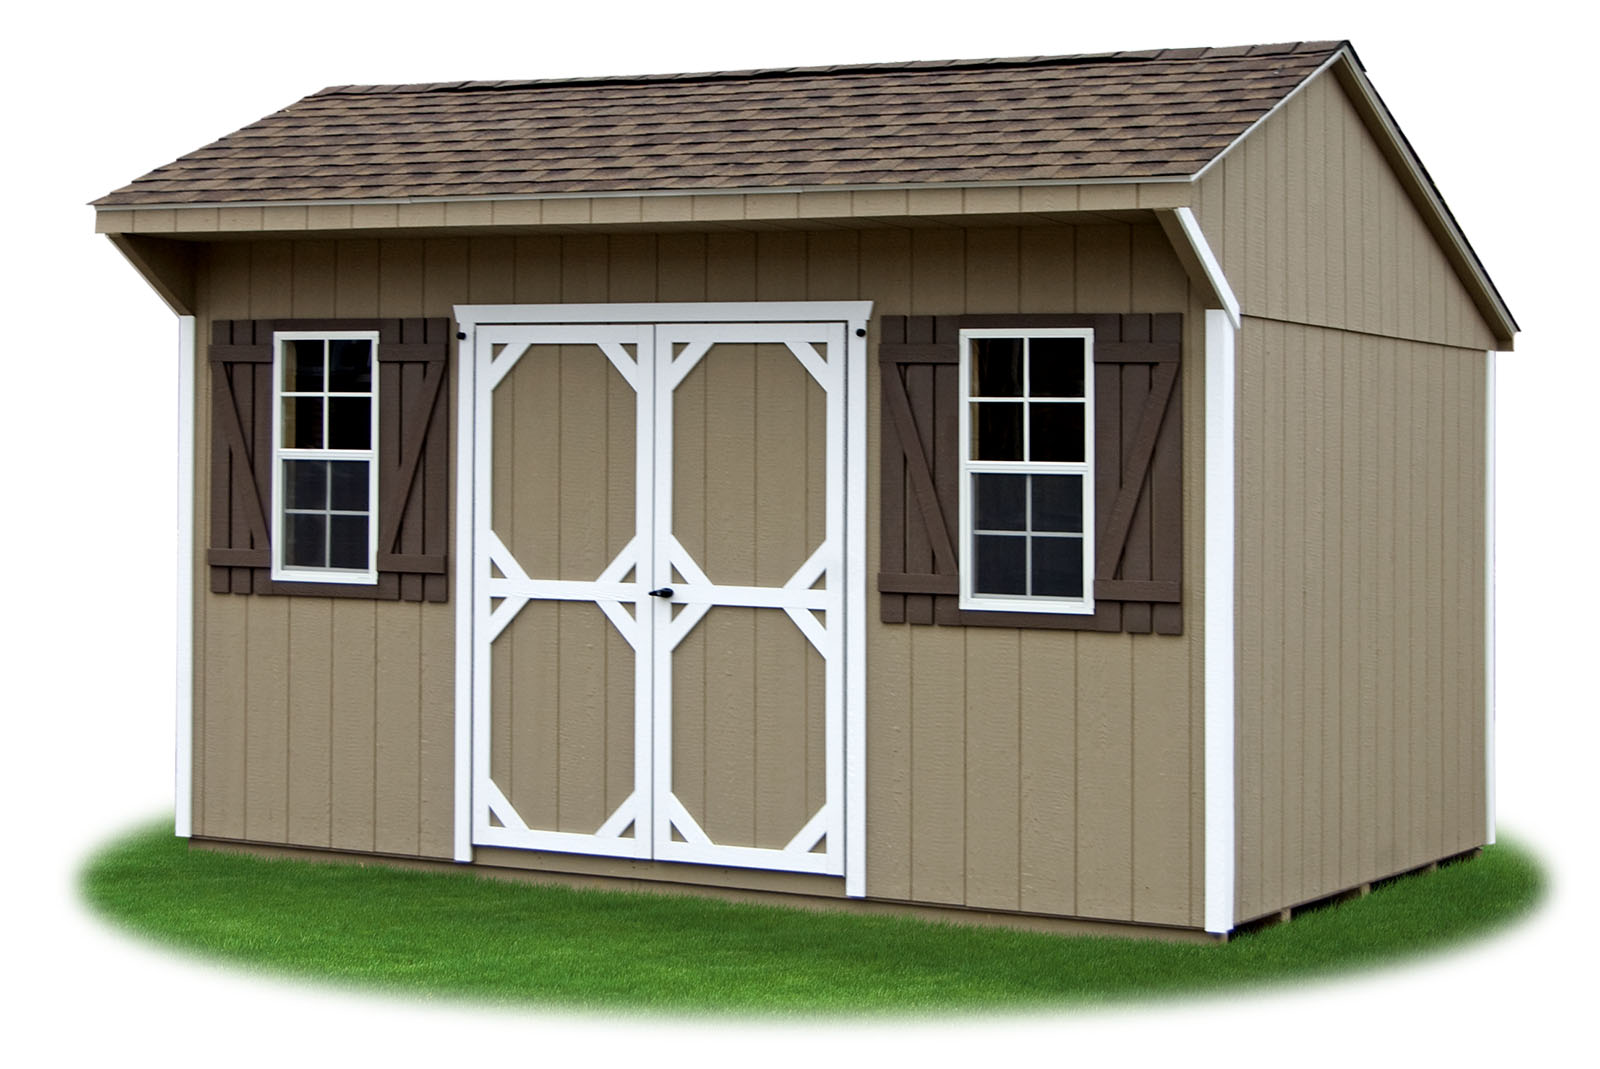 10x14 LP Sided Cottage Storage Shed From Pine Creek Structures  sc 1 st  Pine Creek Structures & Cottage Style Storage Sheds | Pine Creek Structures